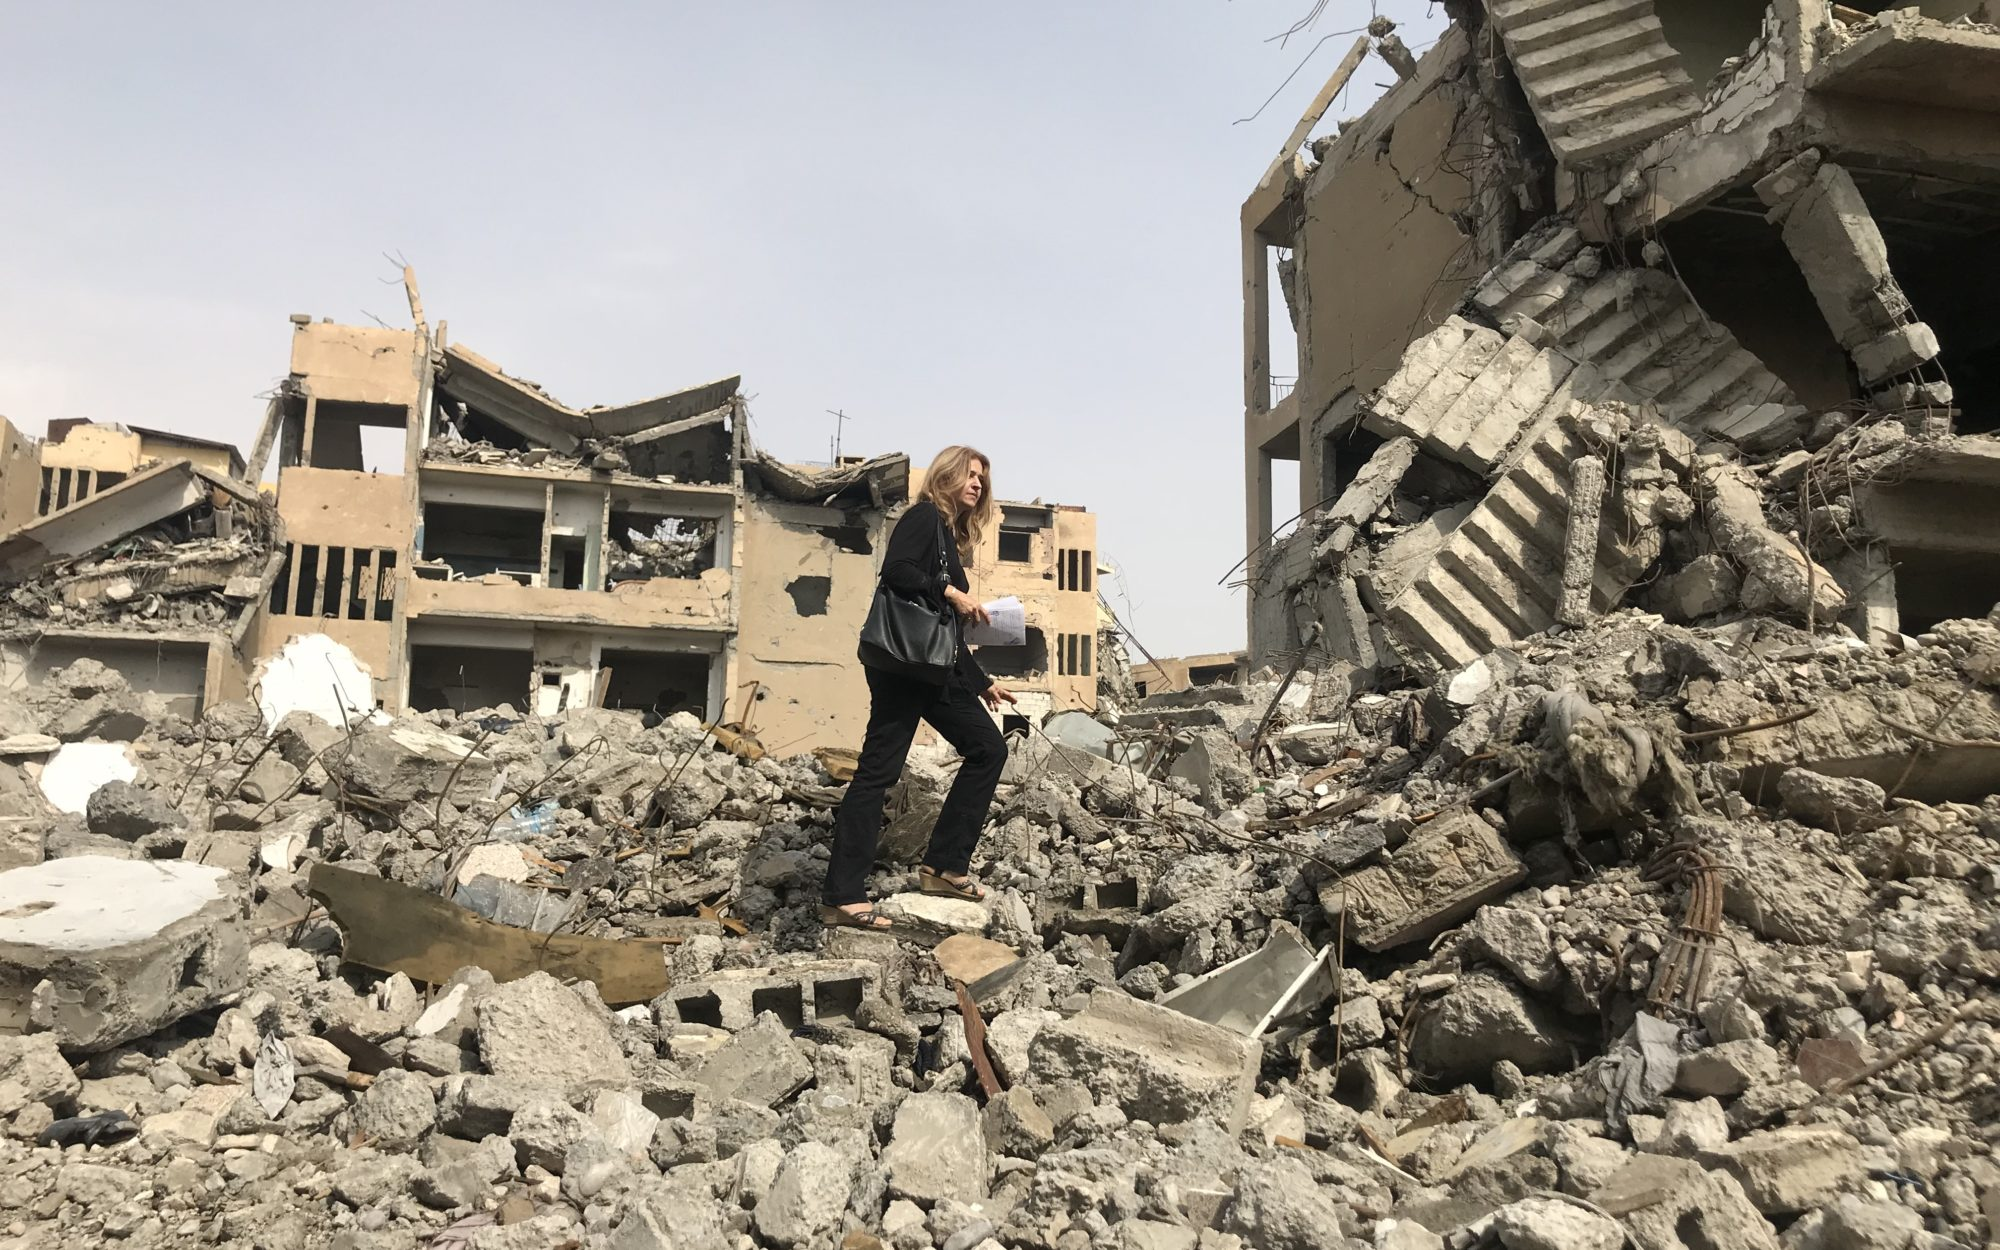 Anna Neistat of Human Rights Watch walks over buildings that have been reduced to rubble